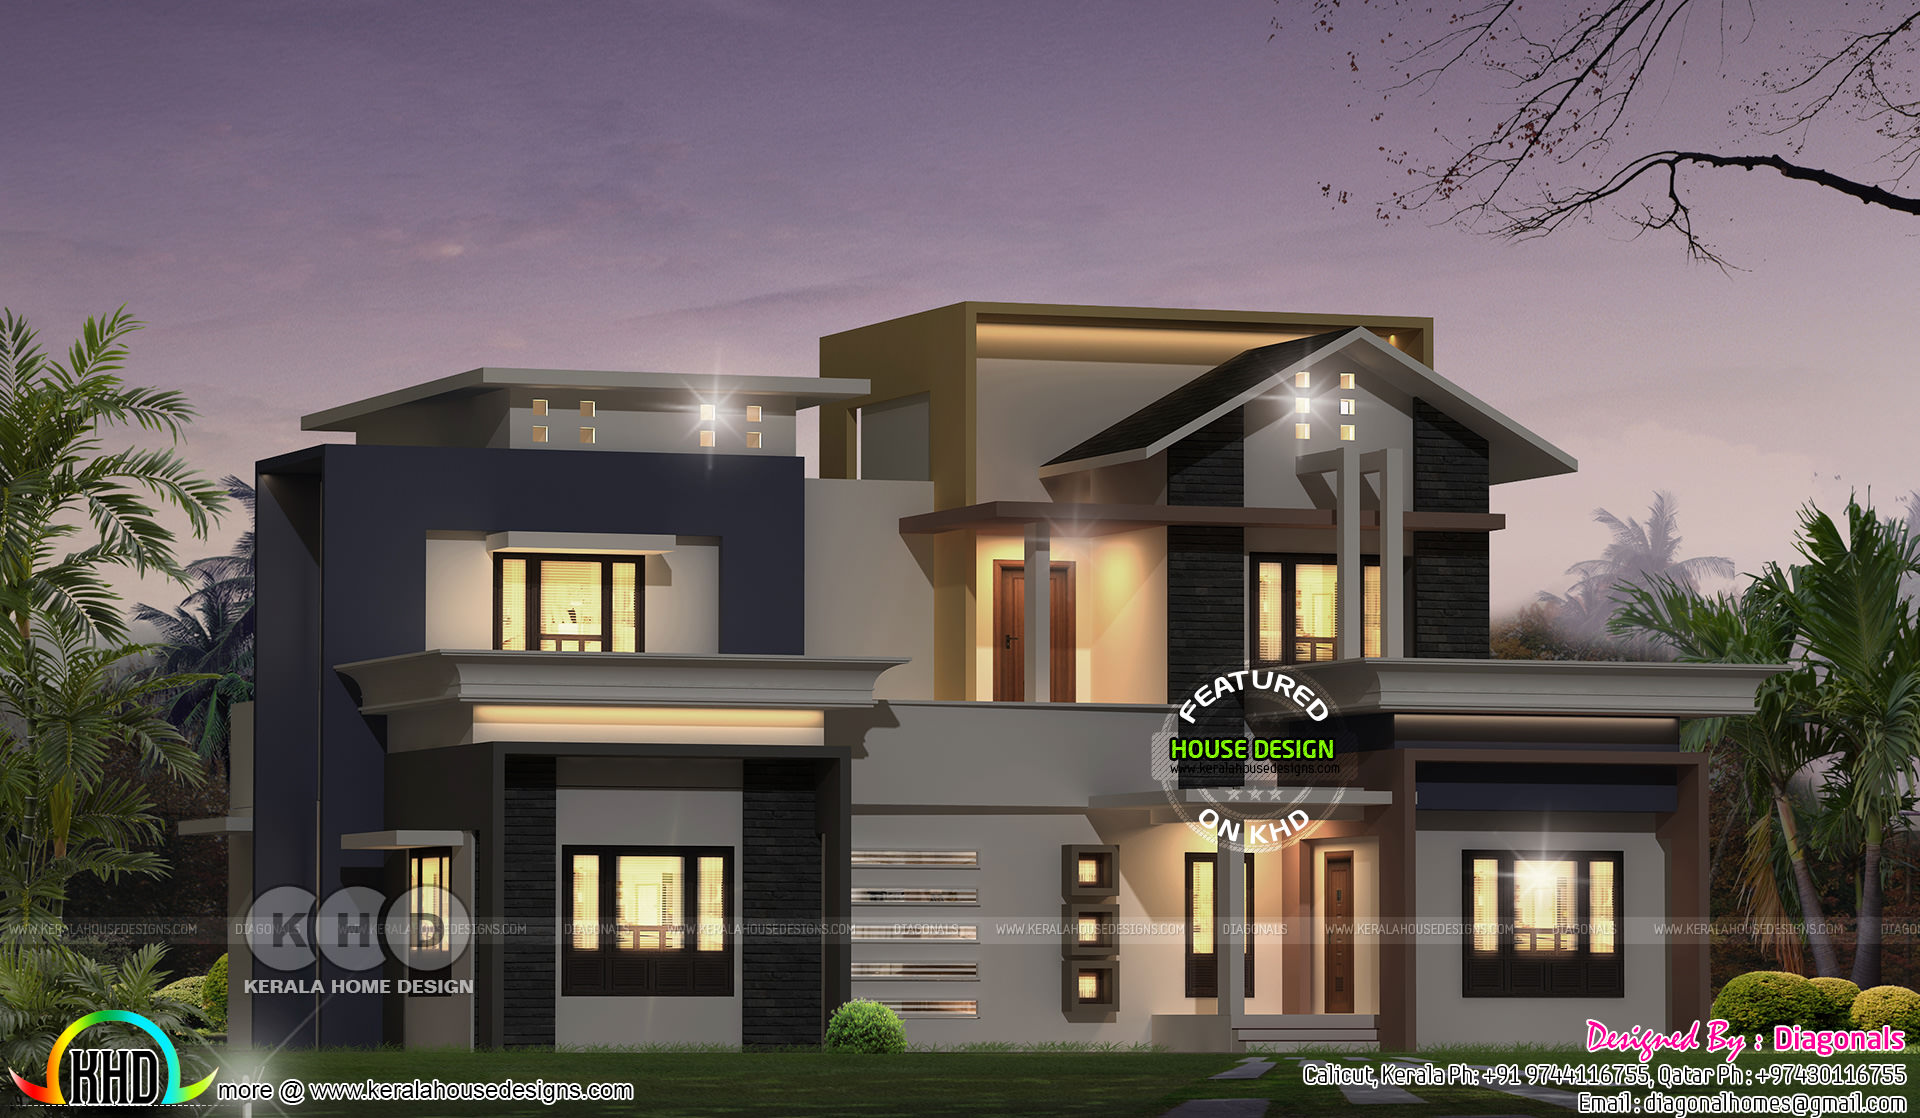 2583 square feet 4 bedroom modern house achitetcure